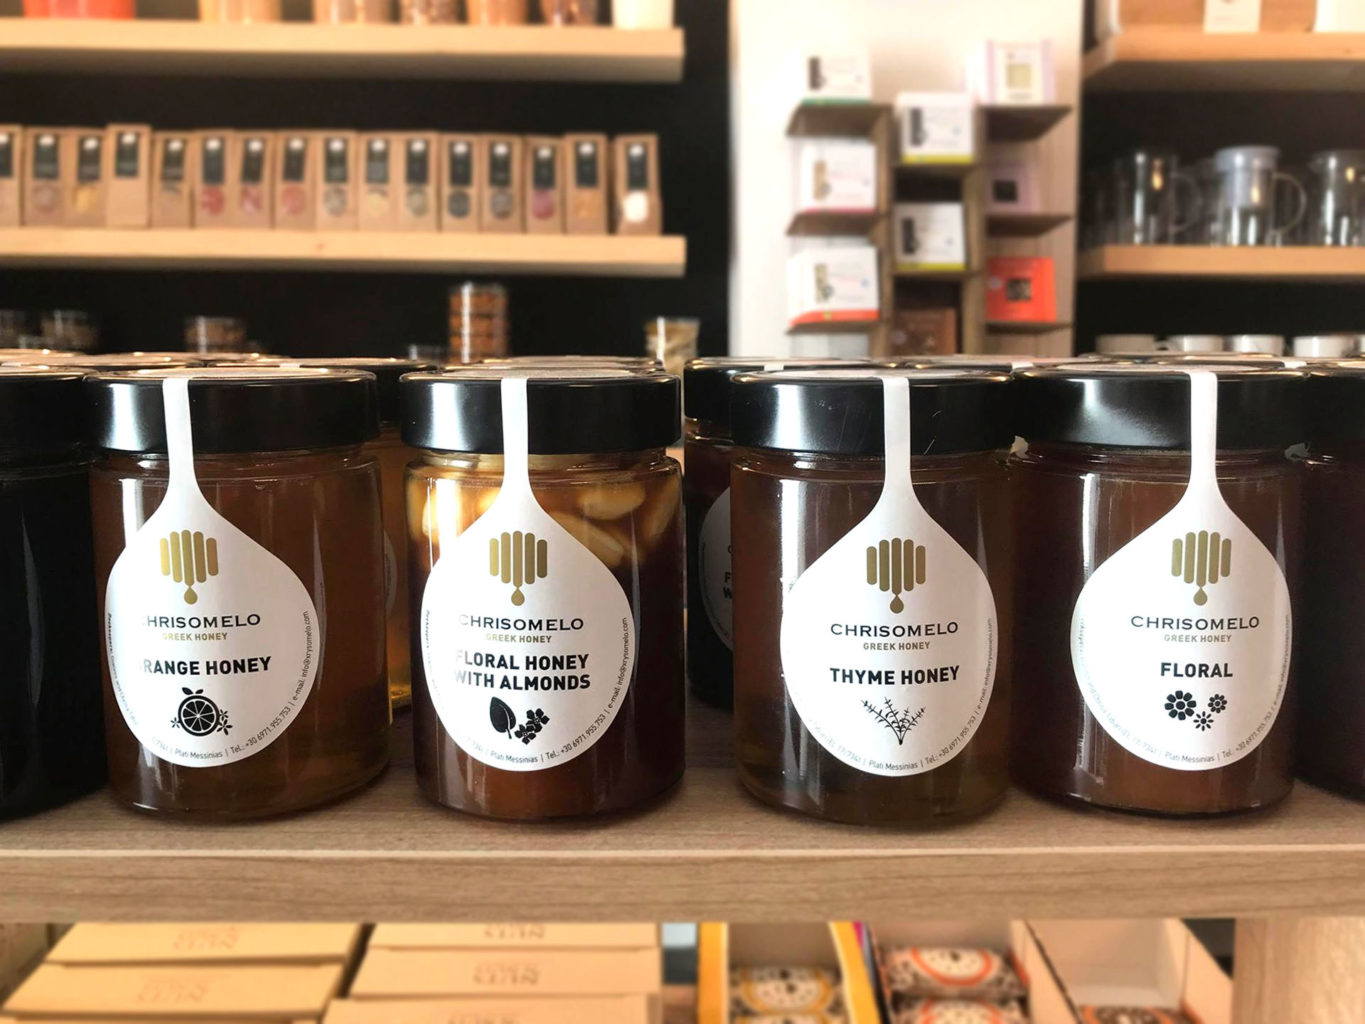 Chrisomelo honey packaging on wooden surface